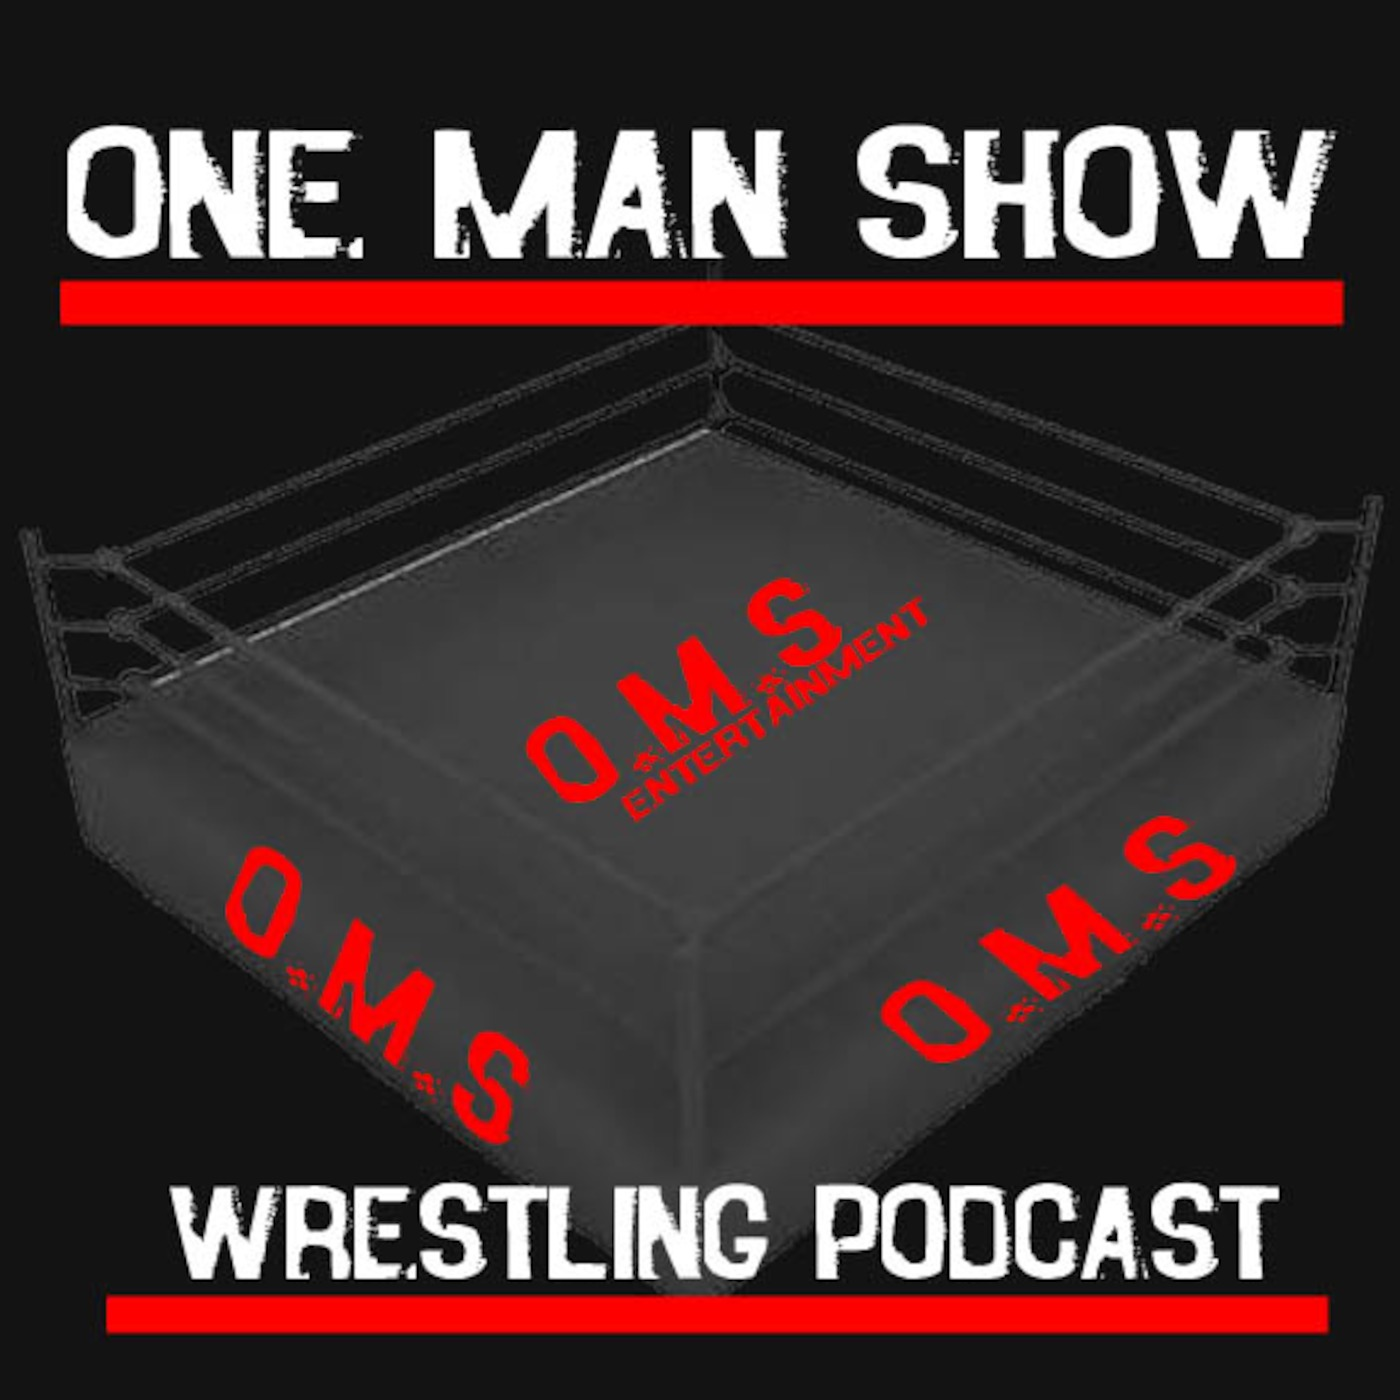 OMS Wrestling Podcast